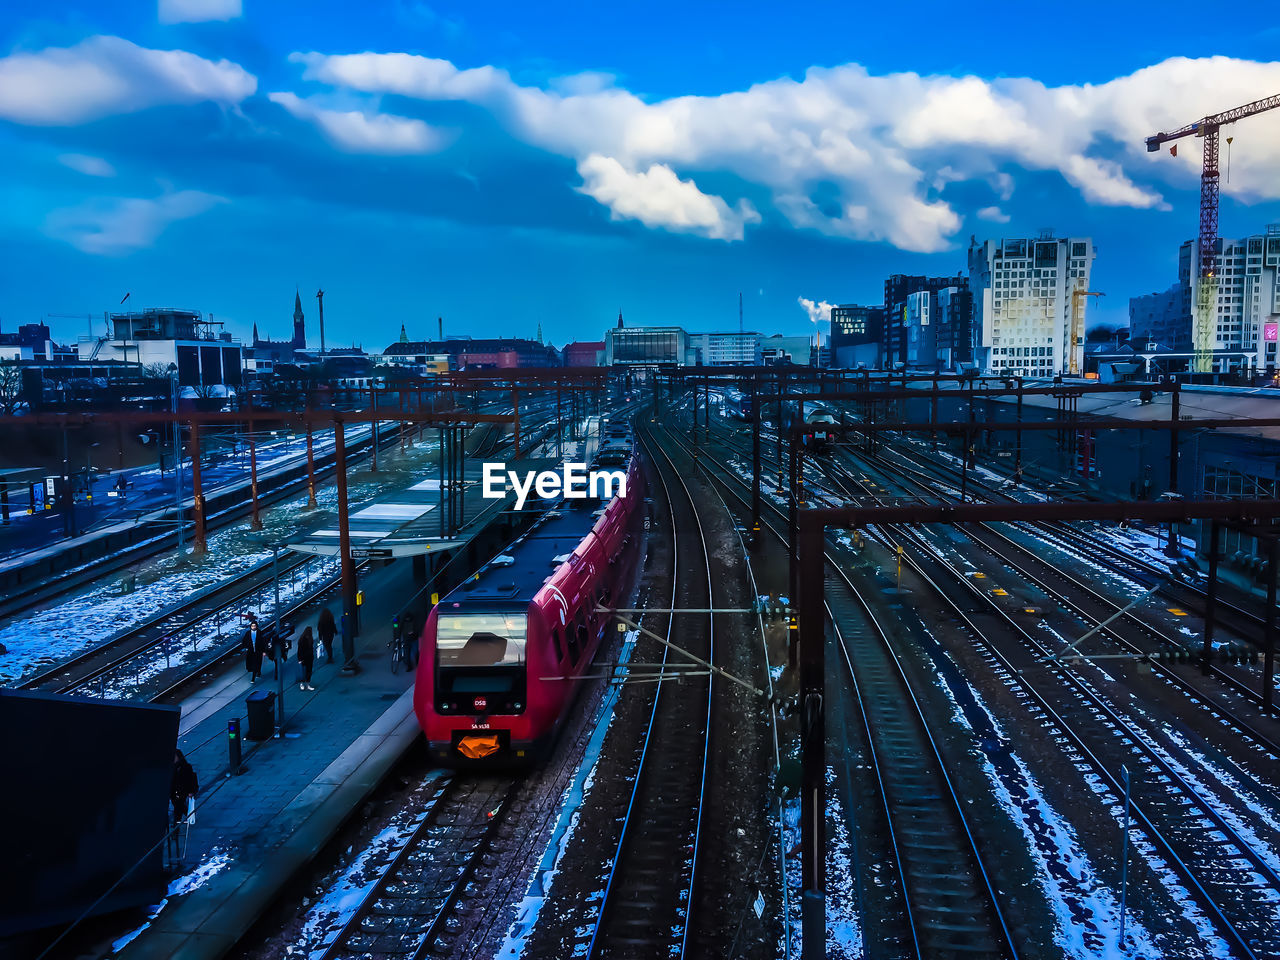 High angle view of railroad tracks in city against sky during dusk